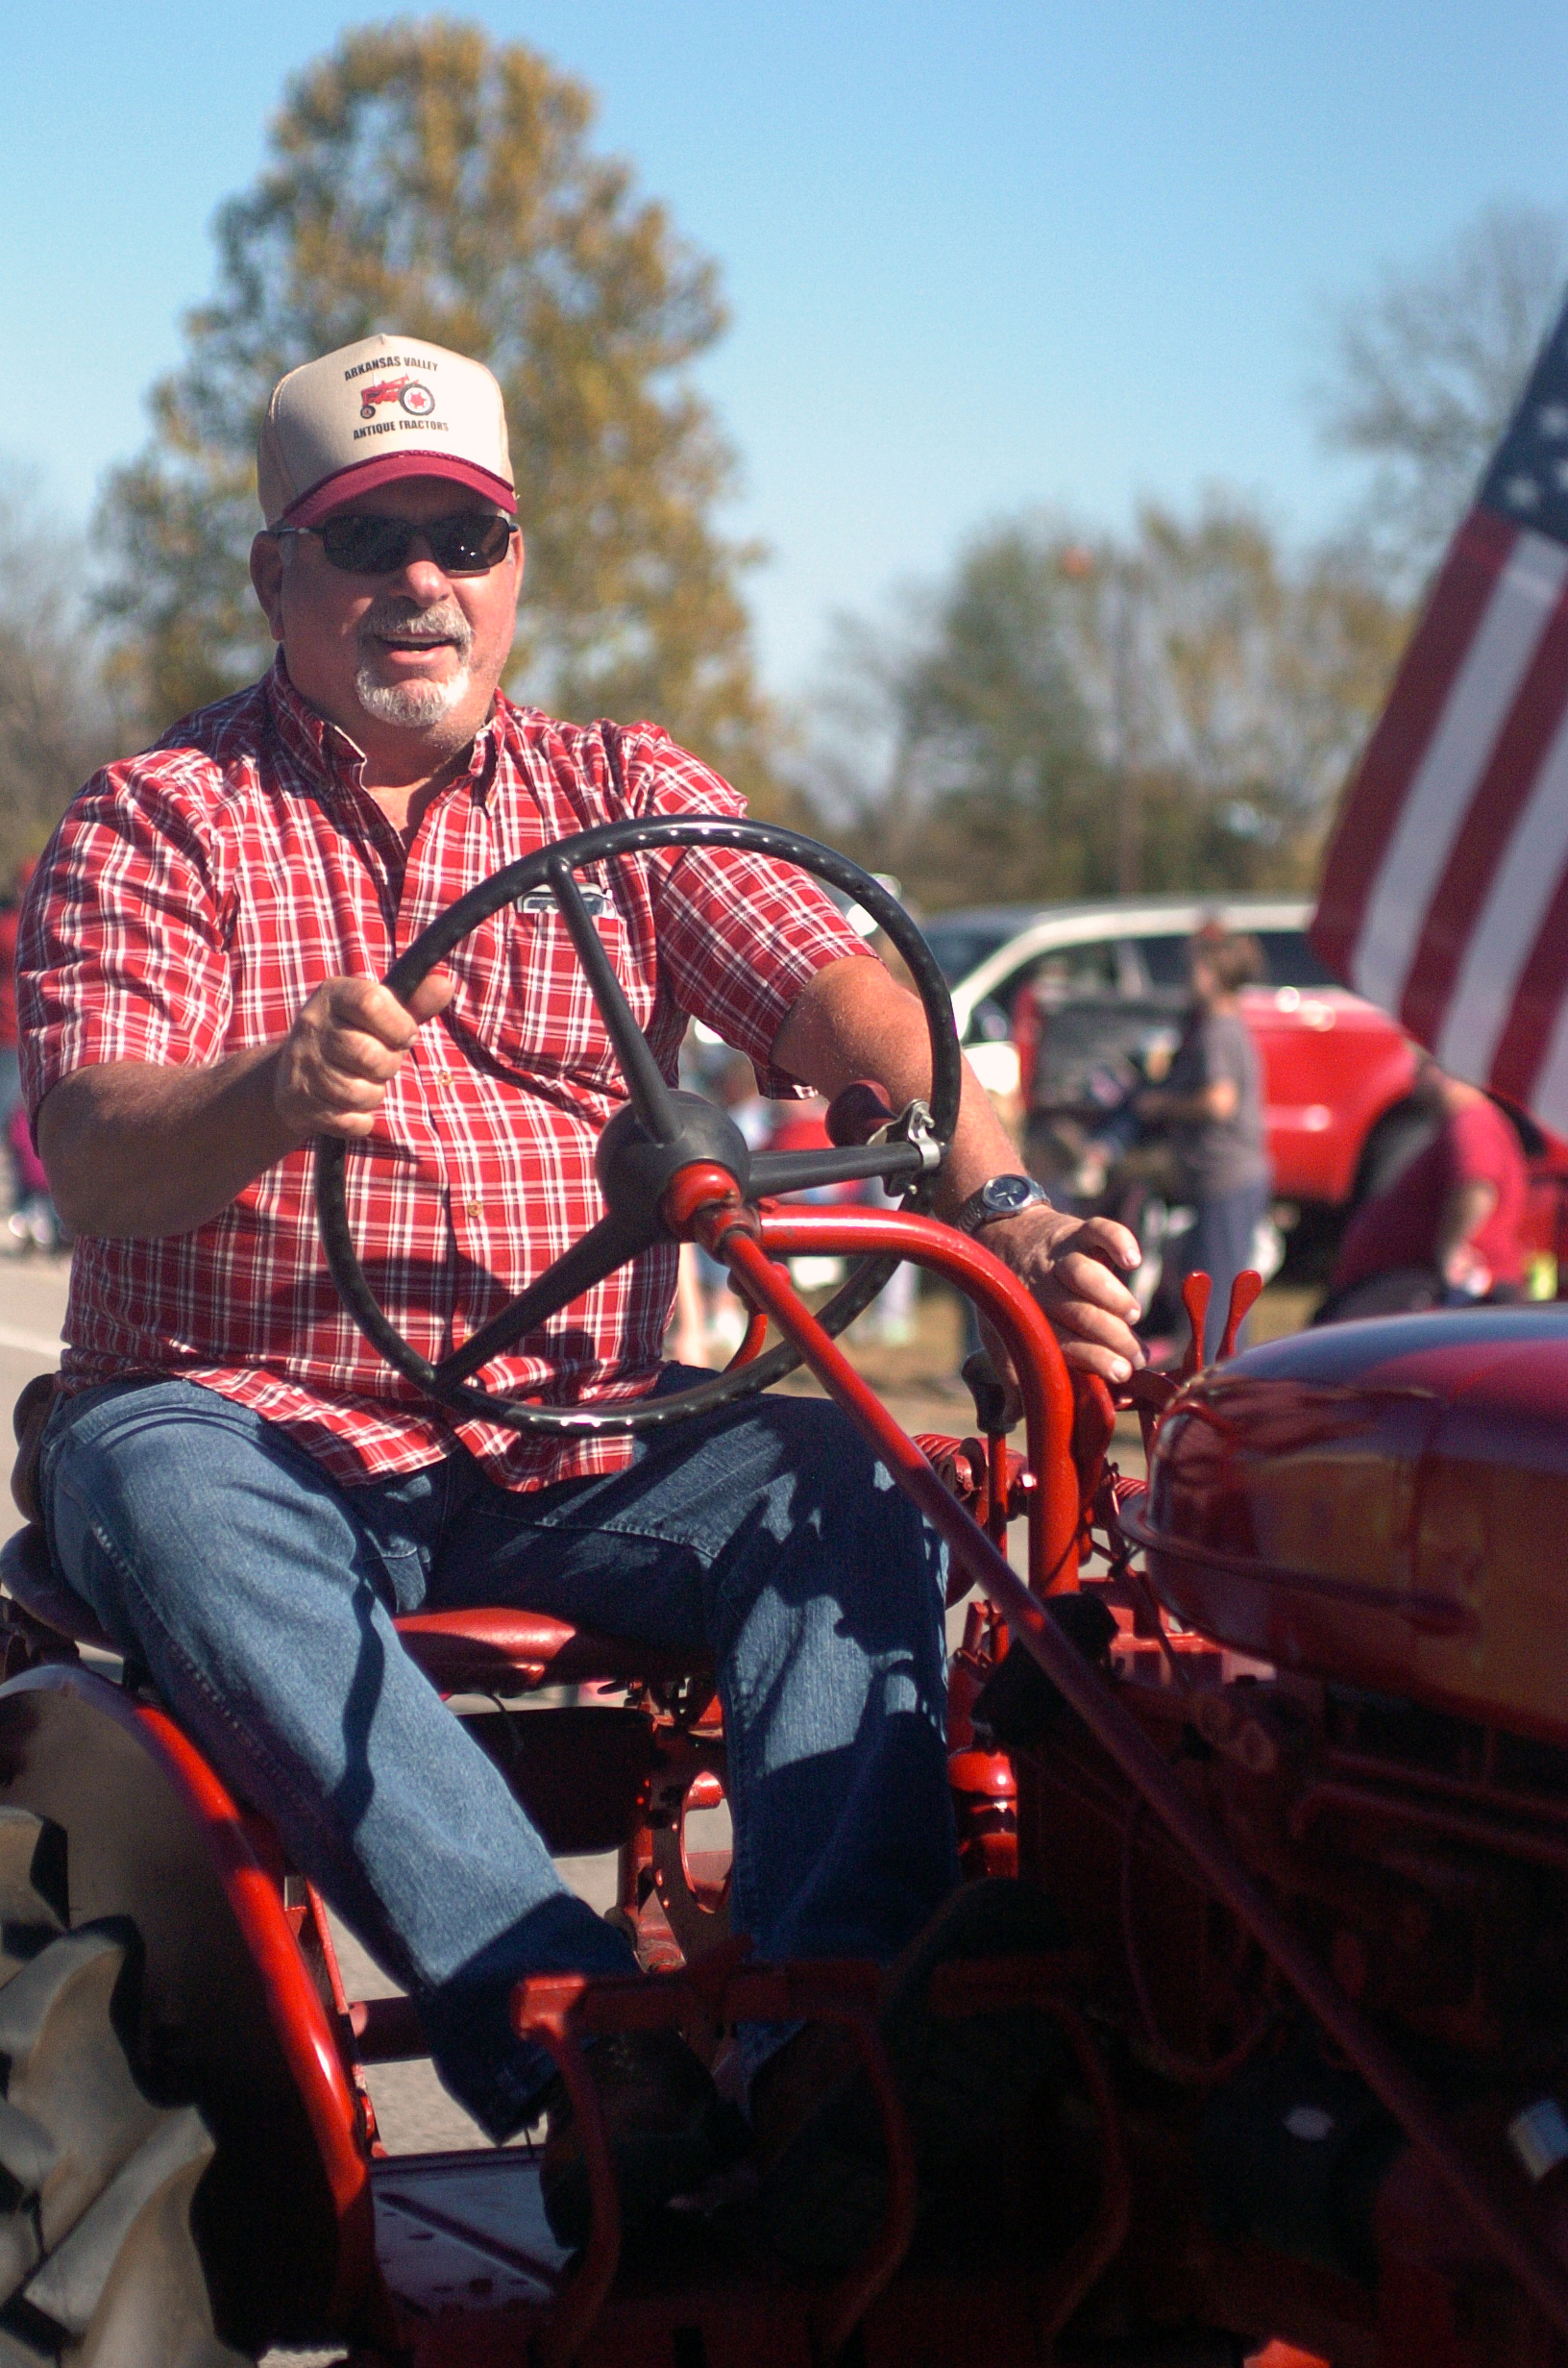 "A tractor driver stares intently as he drives down the road at the fifth annual Veterans Day Parade at Chaffee Crossing was held on Saturday, November 12, 2016 at the Chaffee Crossing Historic District in Fort Smith. The parade's theme was ""Women In The Military,"" and was held to honor veterans from all branches of service and all U.S. wars. (Please include credit when using this photo) STEVE MARQUEZ/StMarq Photography"